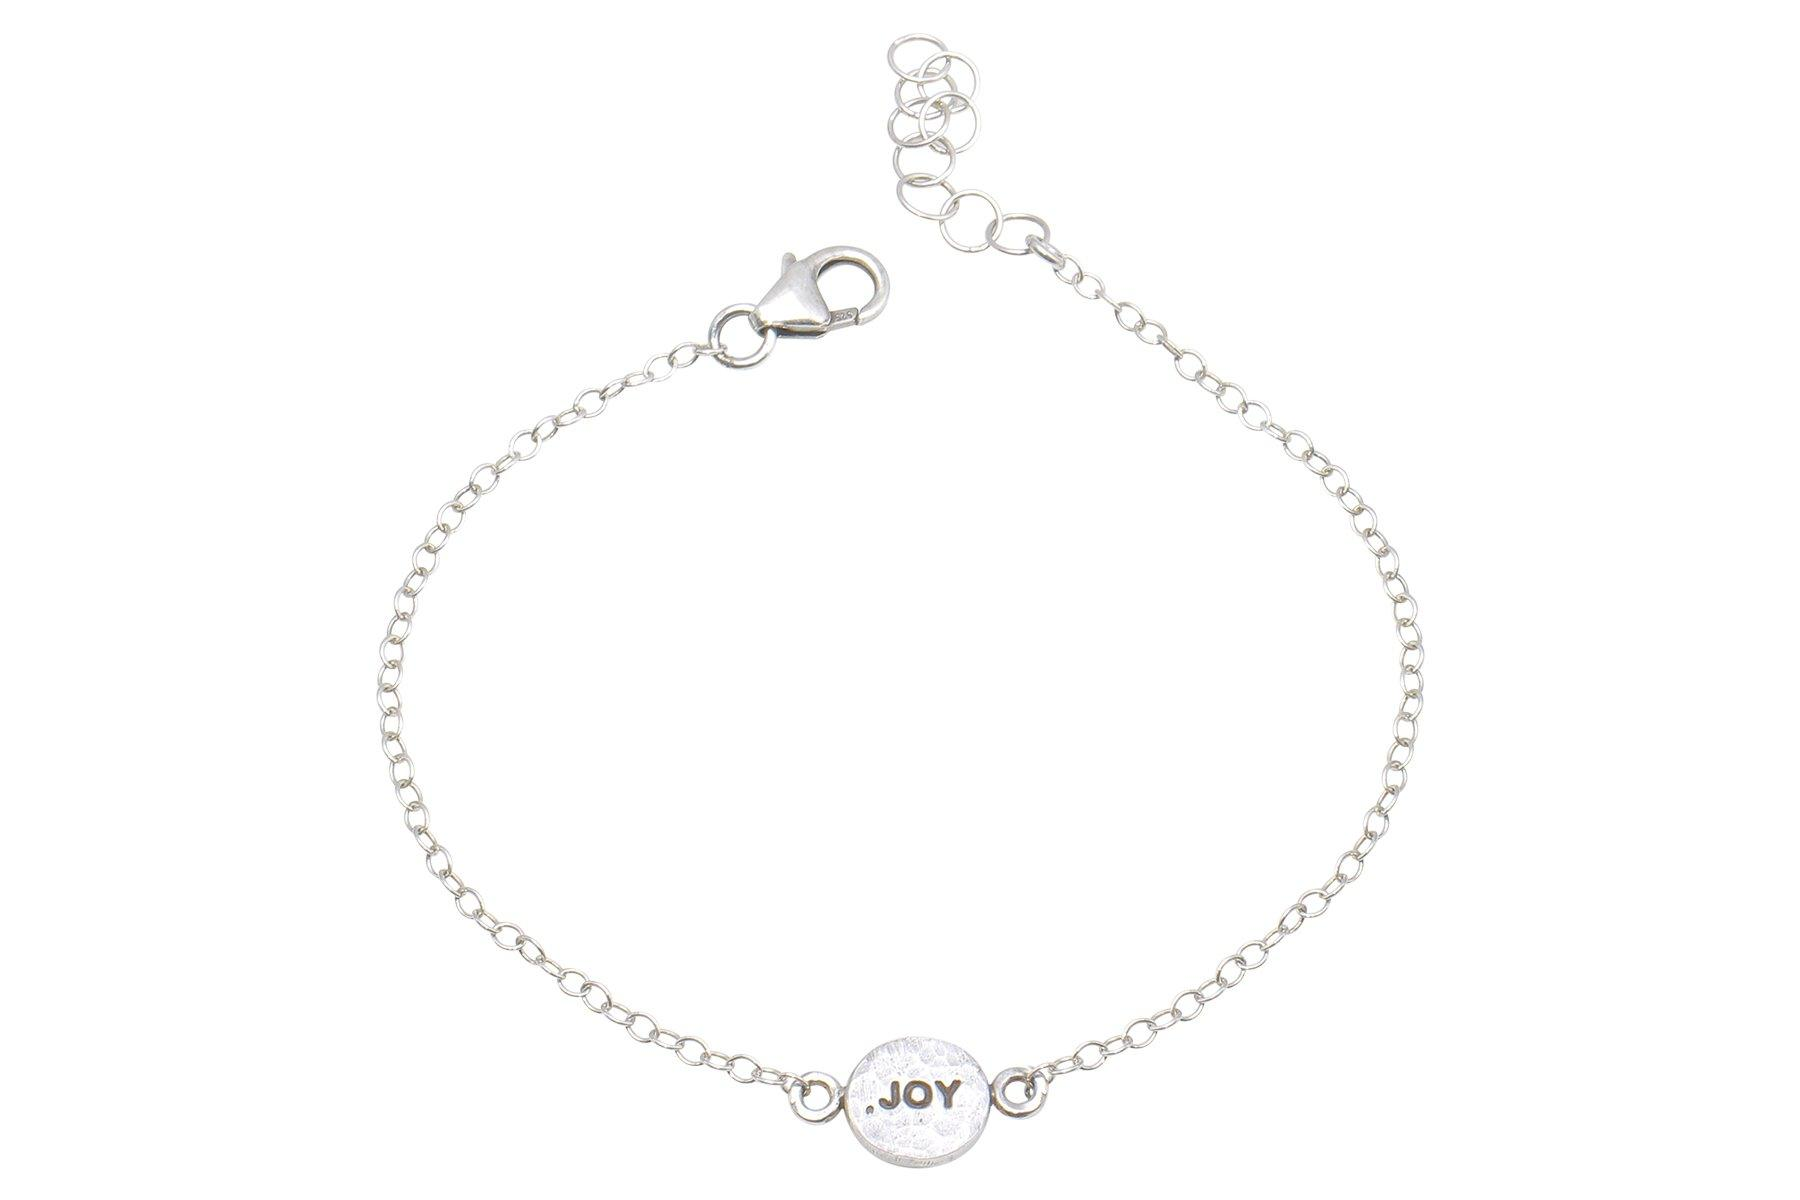 Say Something Joy sterling silver charm bracelet - Amanda K Lockrow